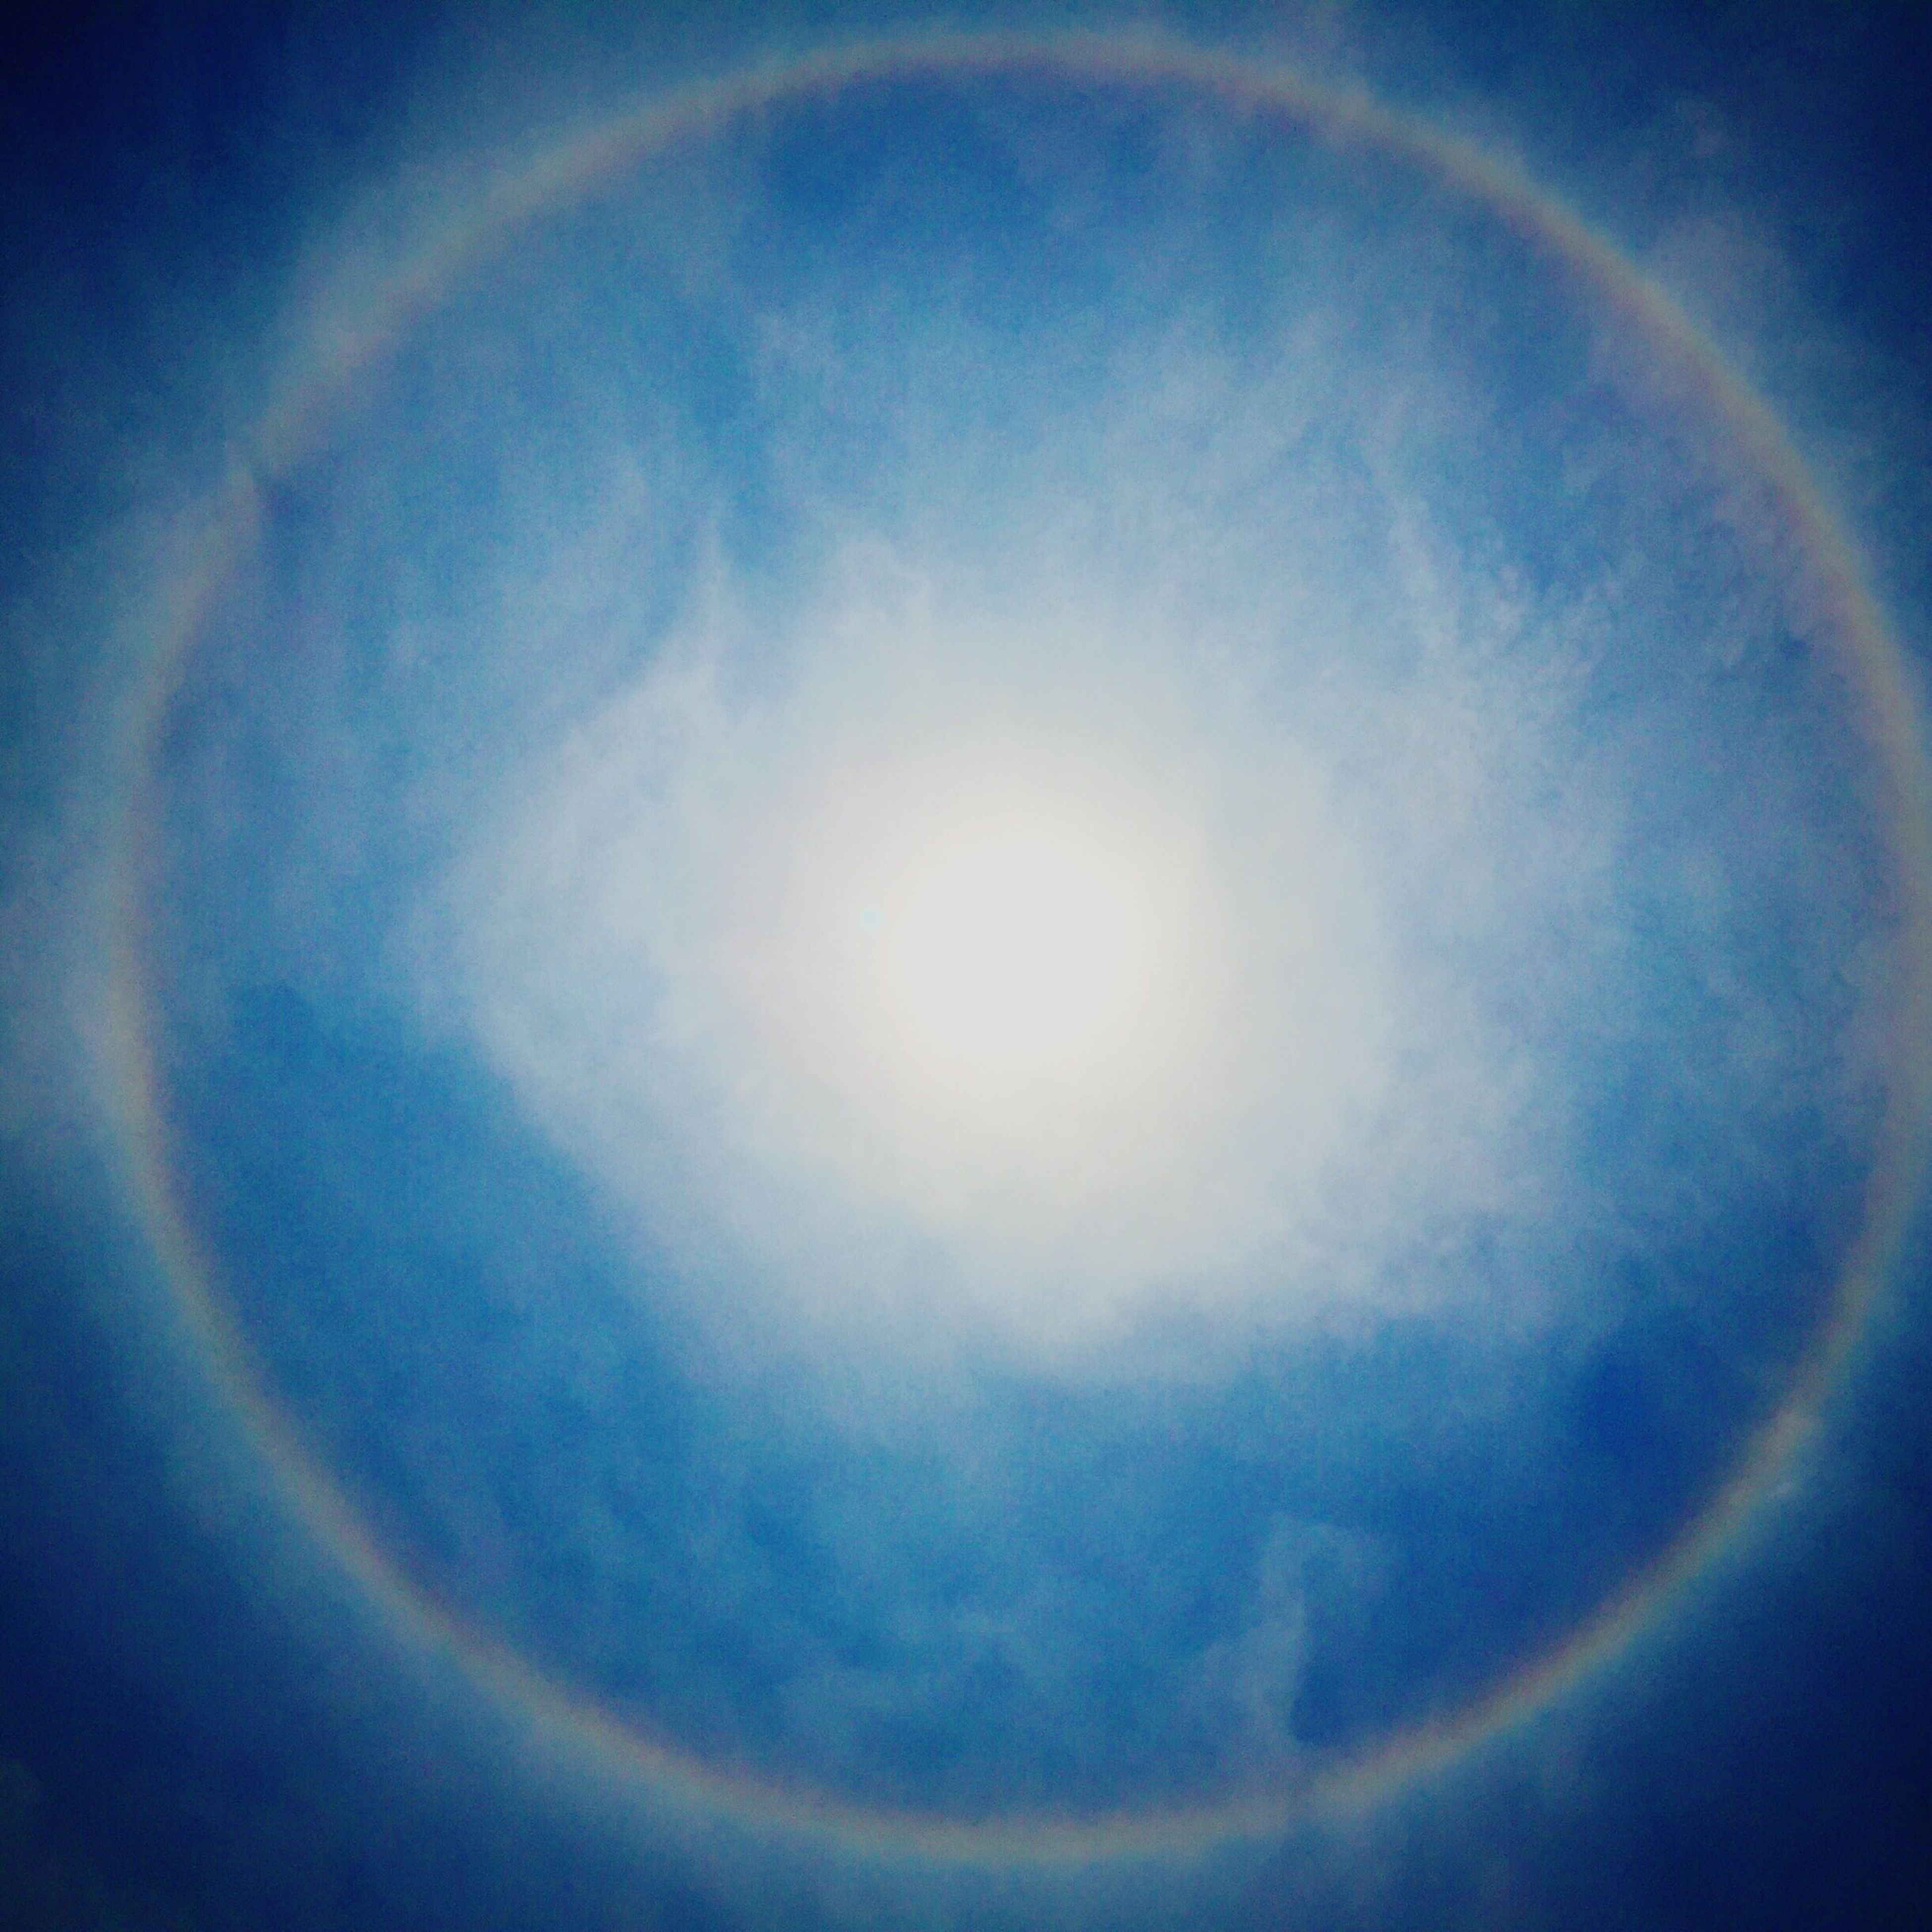 sky, low angle view, sky only, beauty in nature, scenics, cloud - sky, tranquility, blue, circle, moon, nature, tranquil scene, sun, idyllic, astronomy, majestic, cloud, planetary moon, no people, full moon